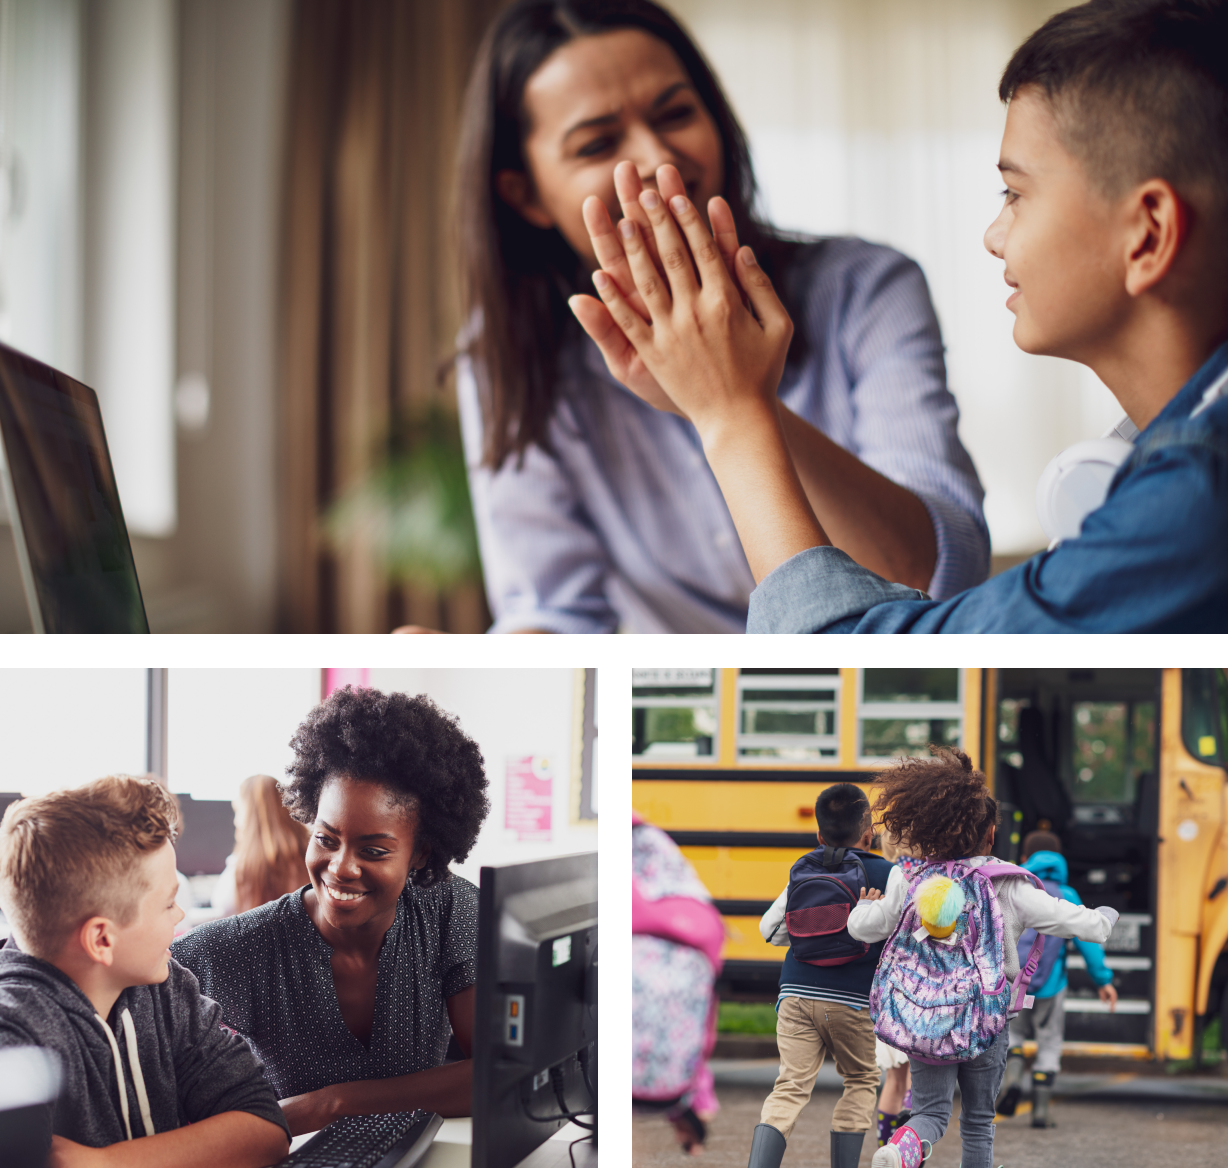 A group of three photographs: one shows a mother and her son high-fiving in front of a laptop, another shows a student and his teacher smiling at each other in front of a school computer, and the last one shows a group of children running excitedly toward a school bus.